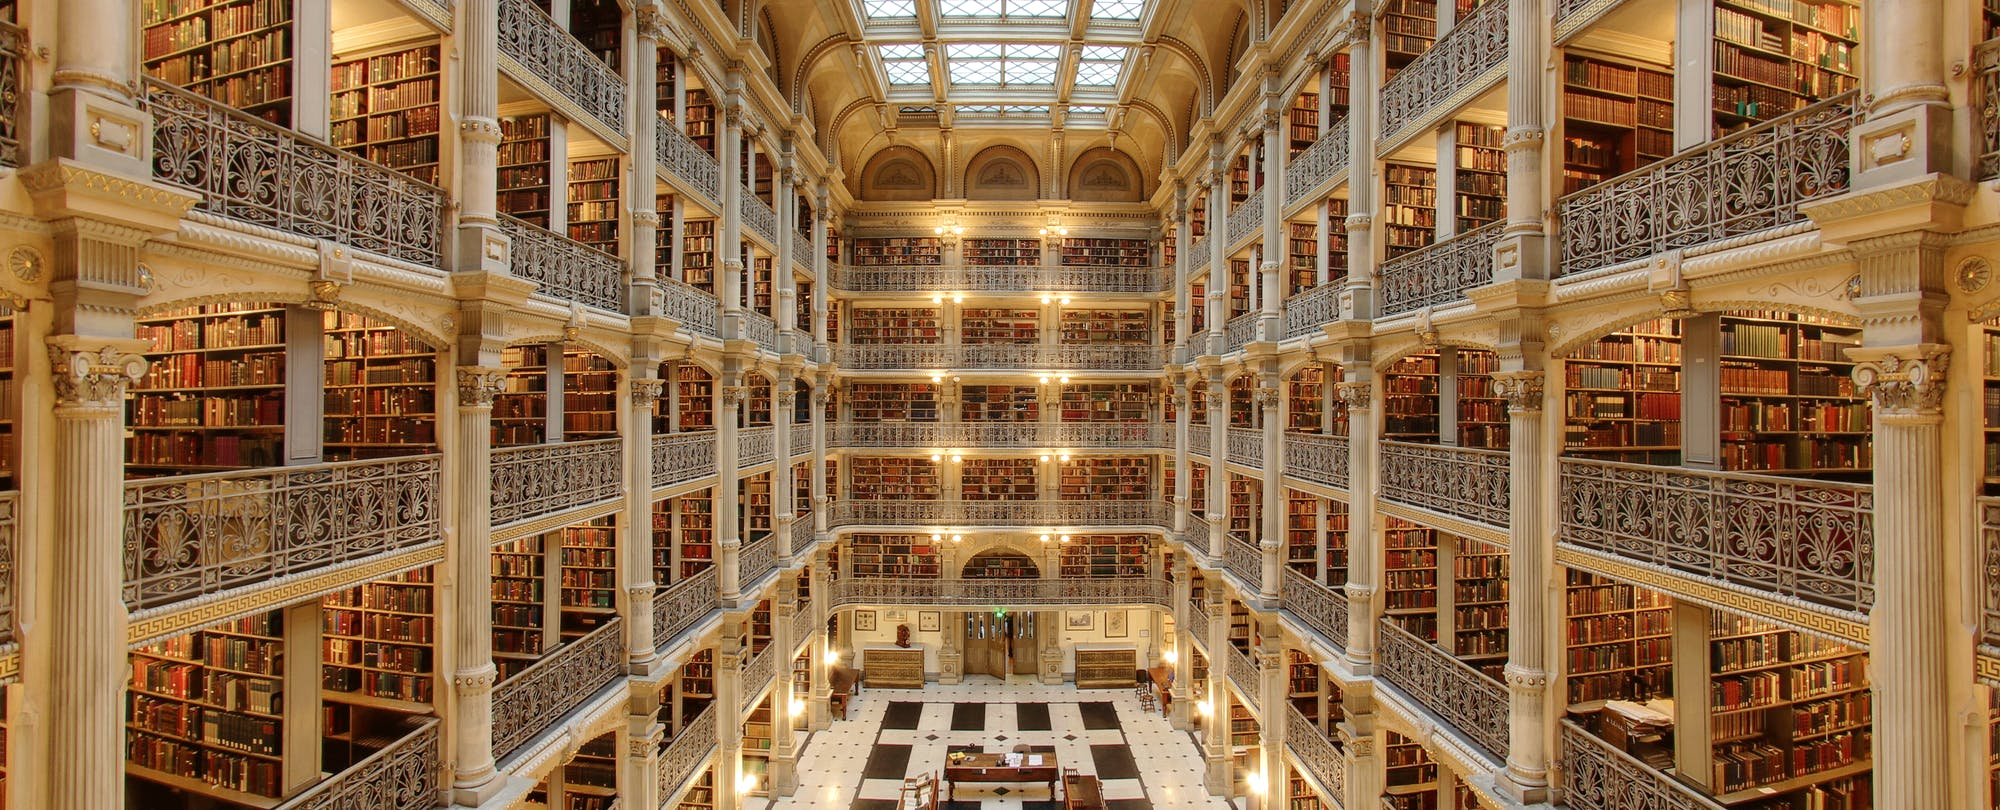 Will Curriculet's Rentals Mark the End of Physical Libraries?